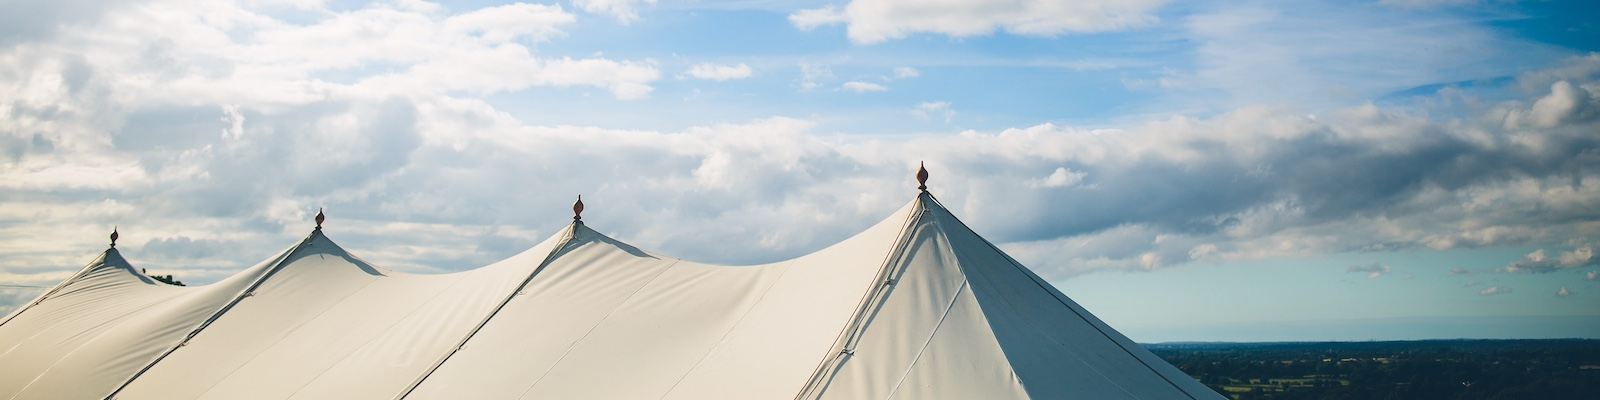 Petal marquee roof 9m x 27m